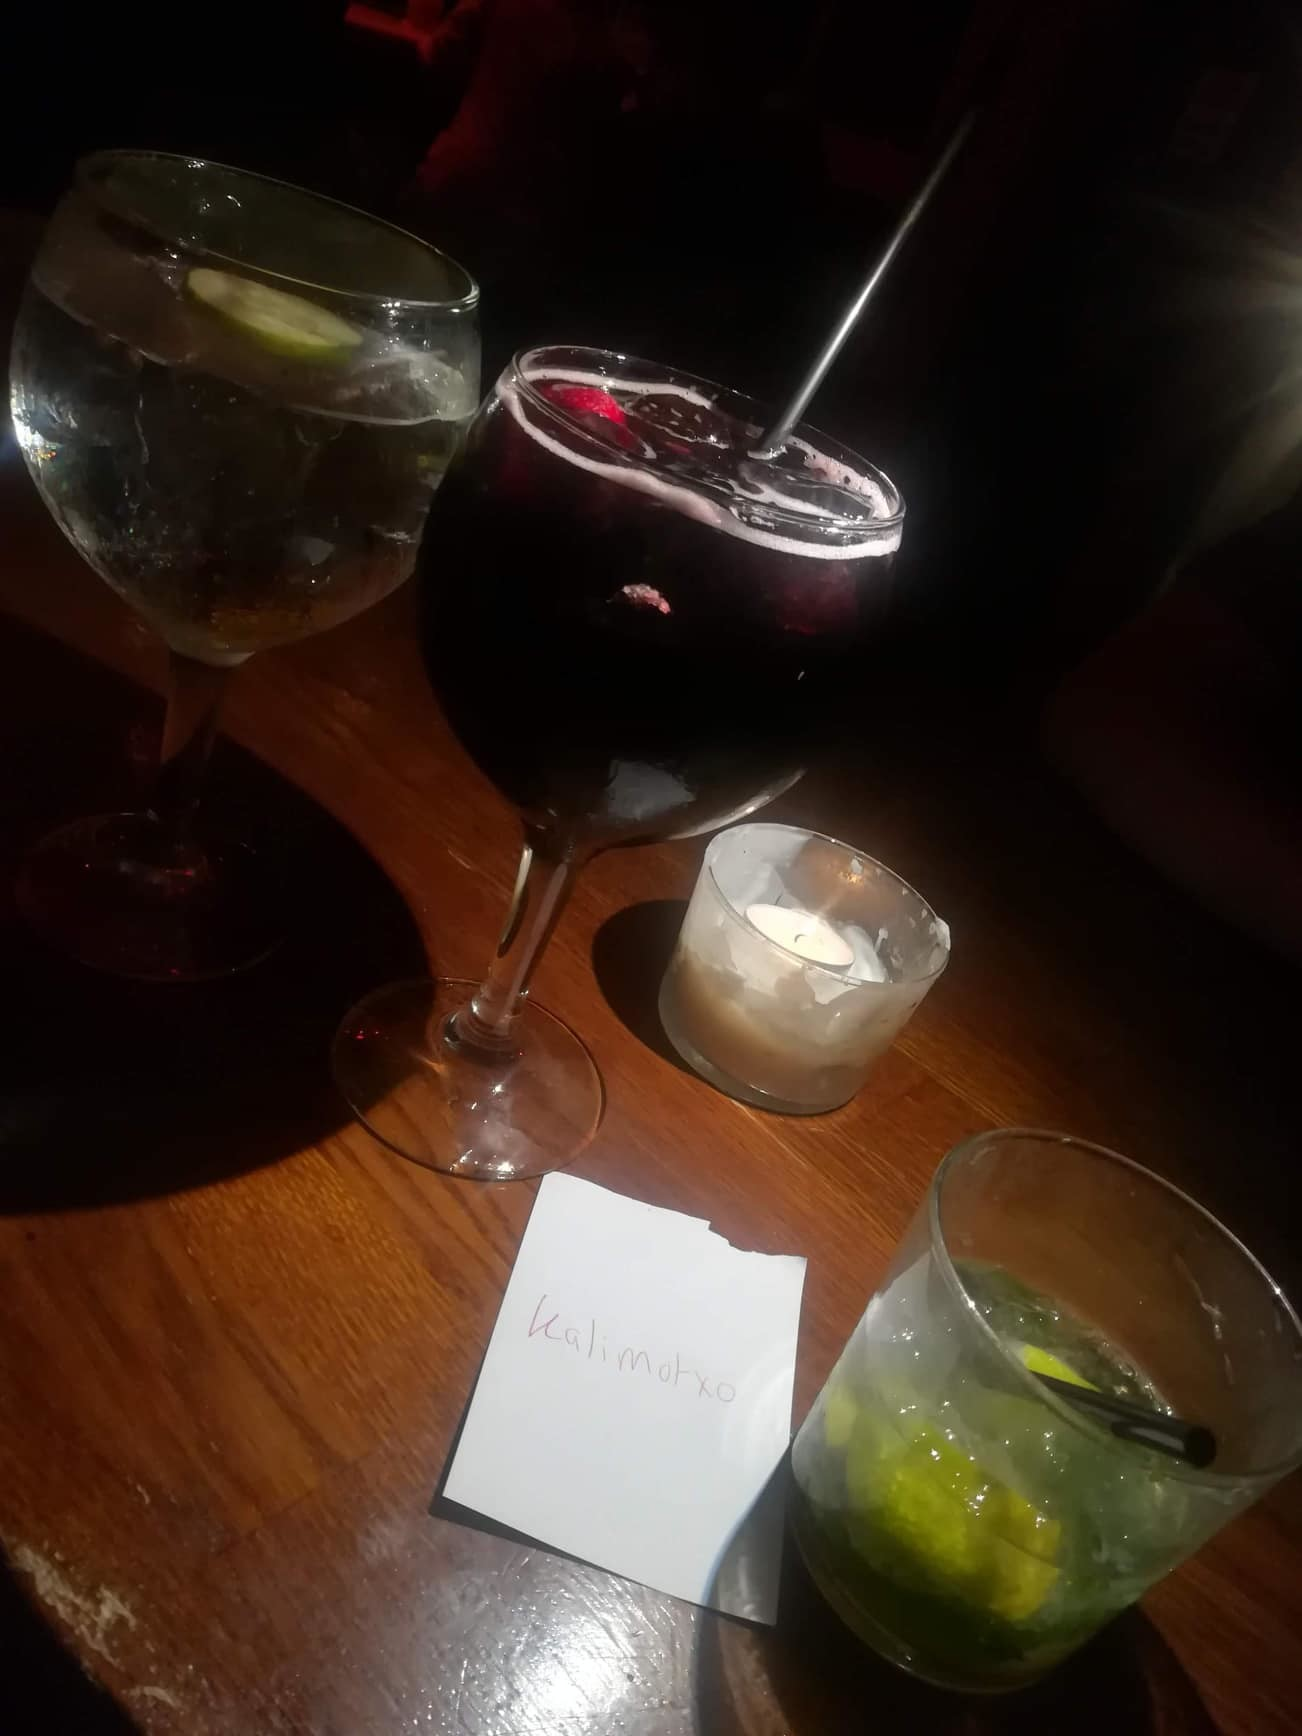 Best mojitos/Cocktails in town! (Caravela, Limehouse, The mint - Parte 1)